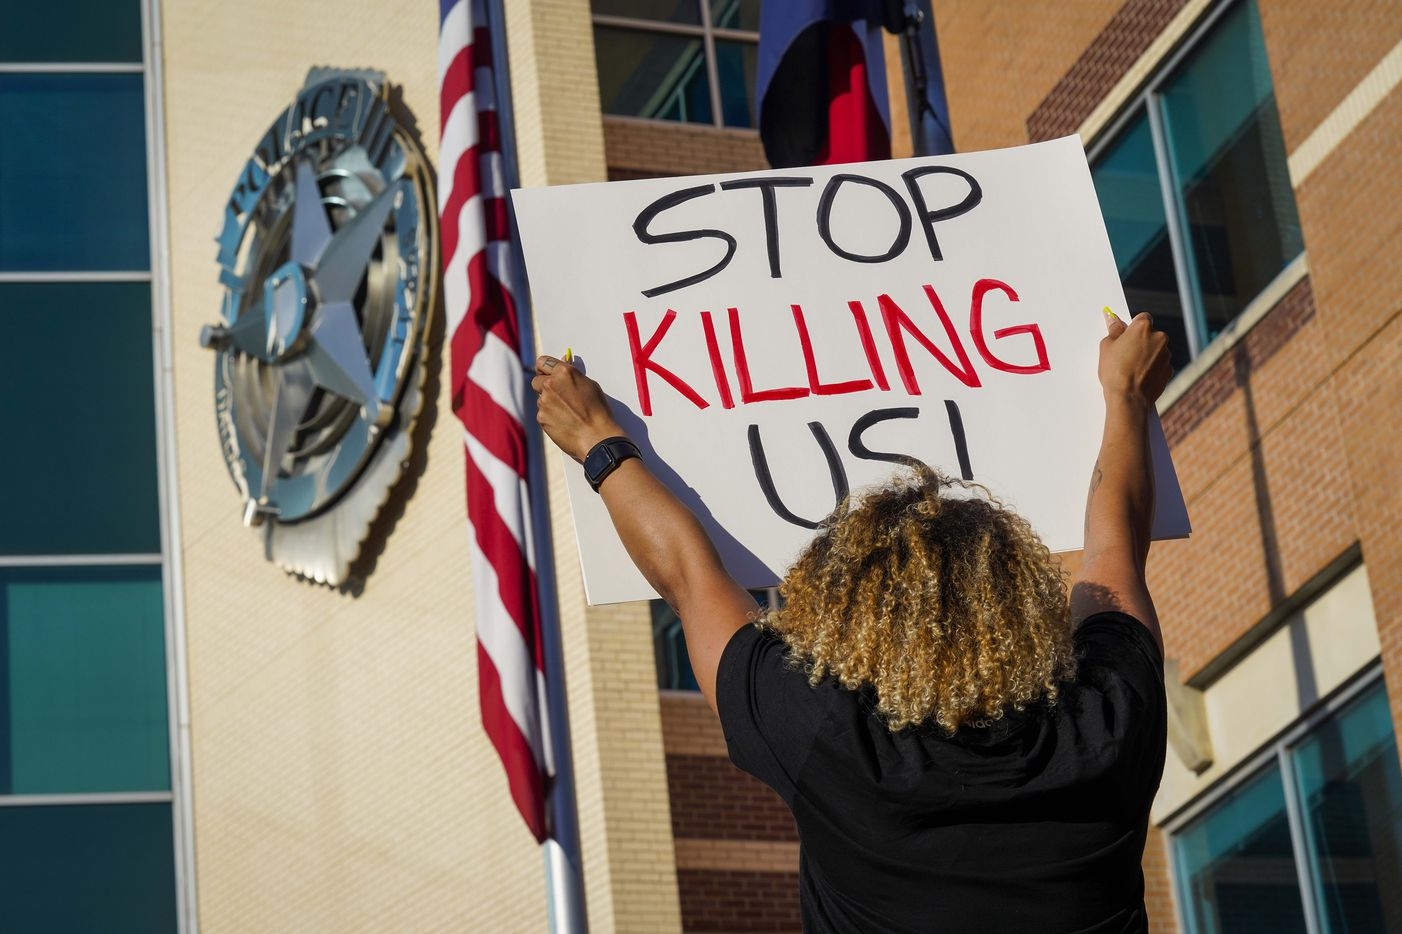 Demonstrators protest against police brutality at the Dallas Police Headquarters on Friday, May 29, 2020, in Dallas.